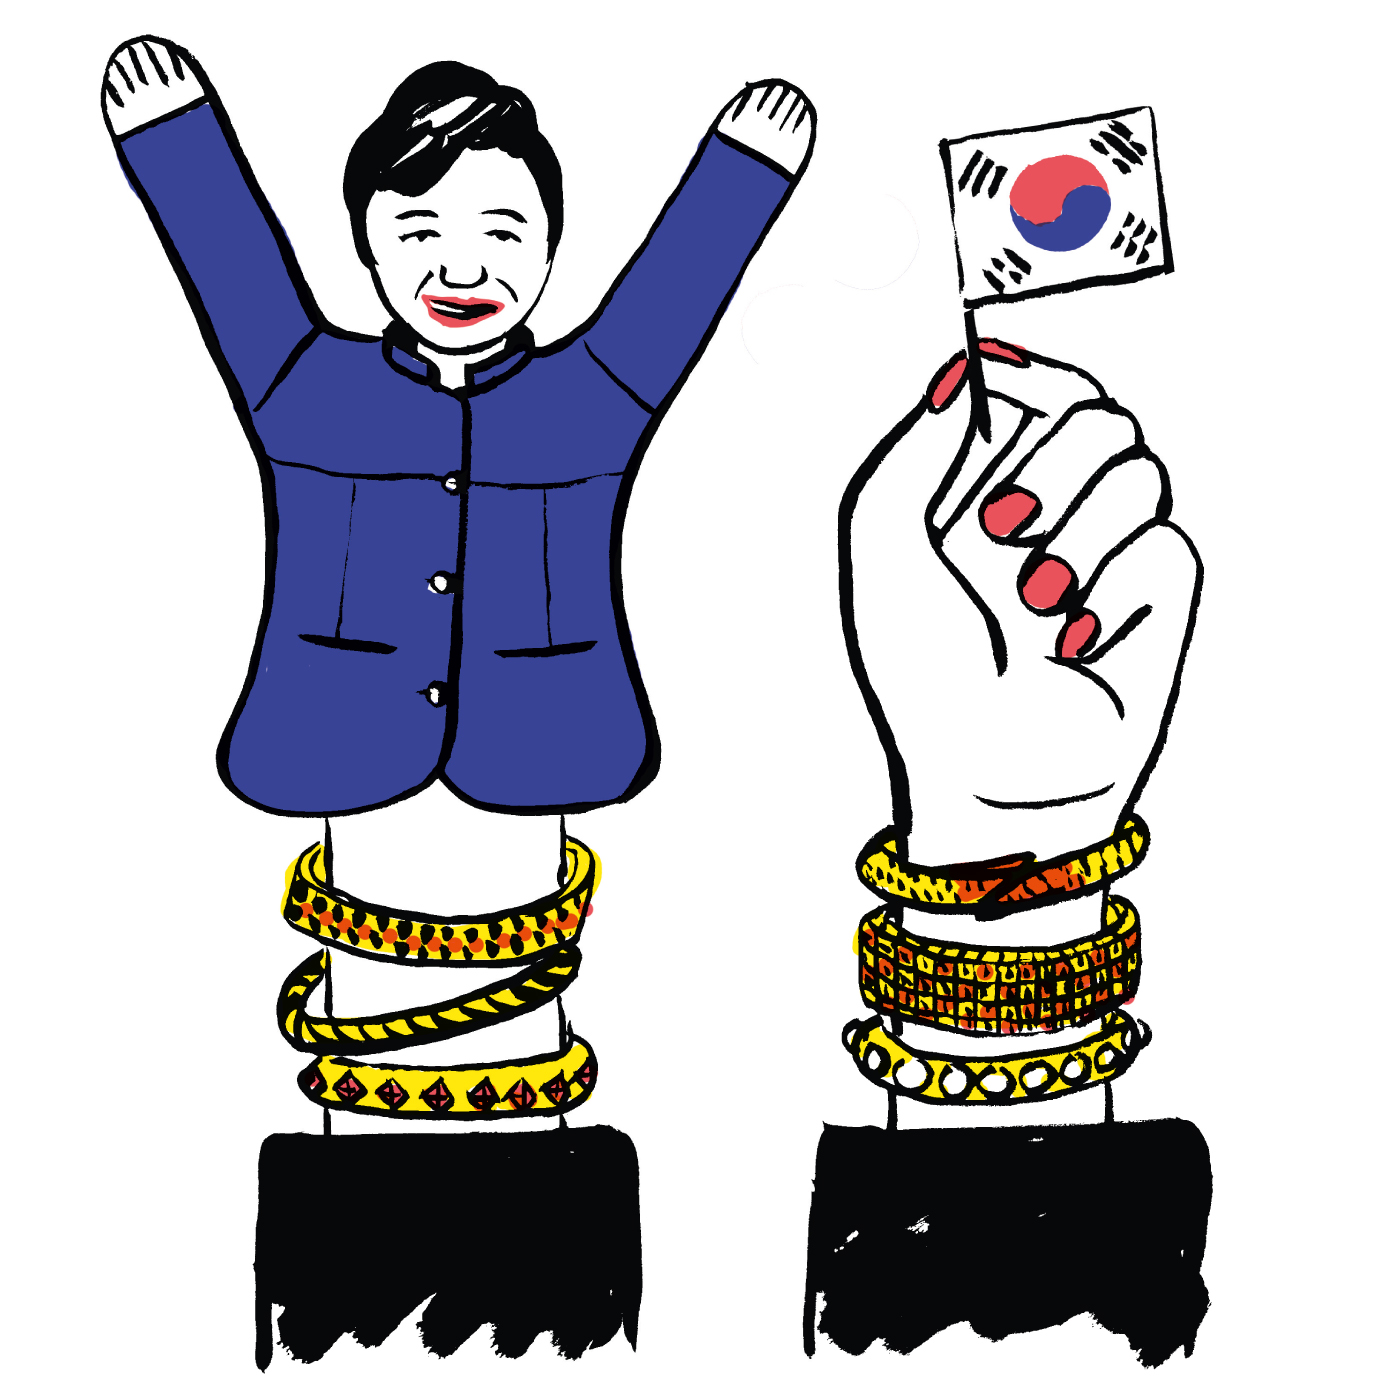 1400x1400 This Is Hell! South Korea's Multi Generational Corruption